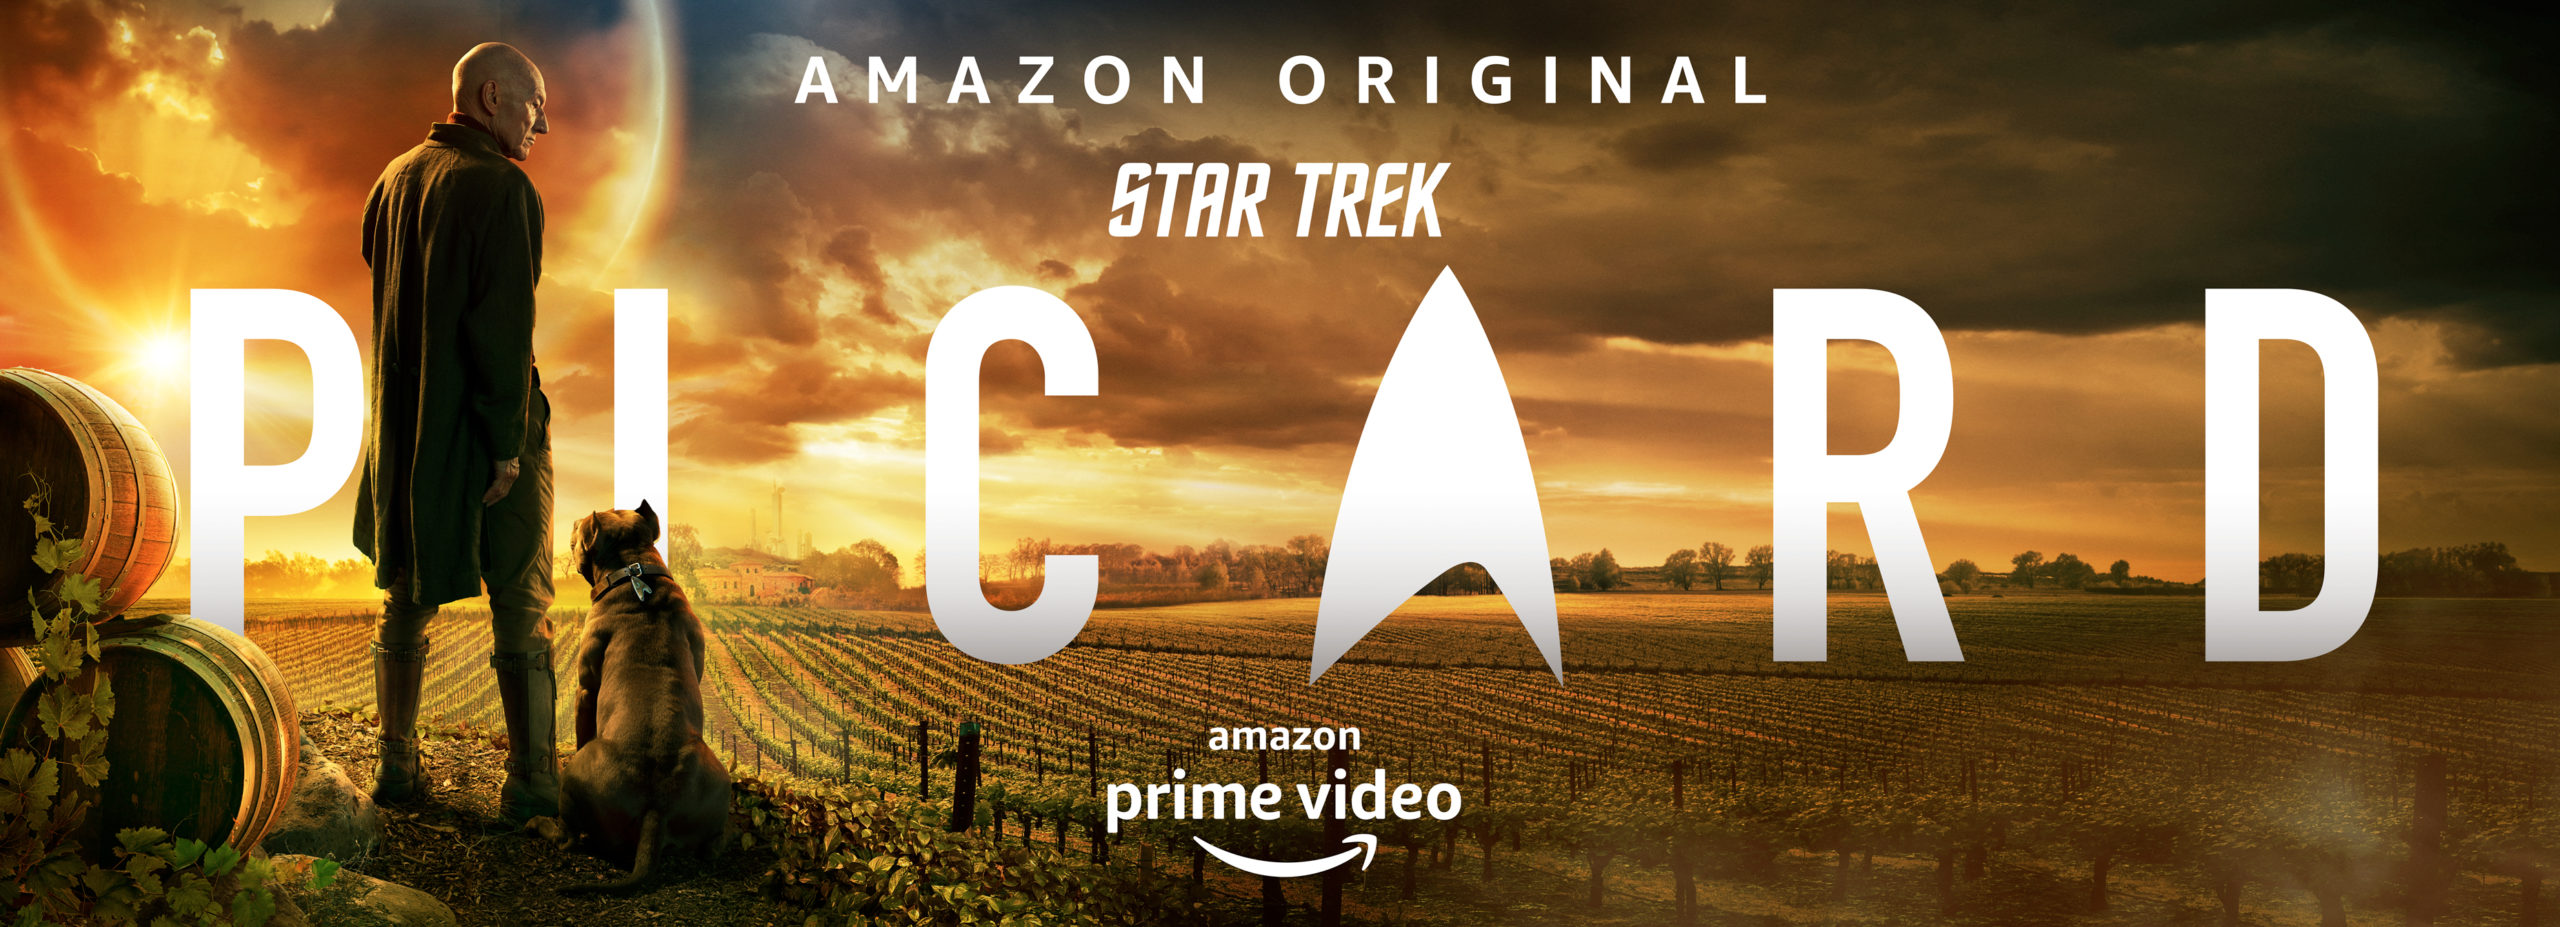 Sir Patrick Stewart en póster y teaser de Star Trek: Picard de Amazon Prime Video